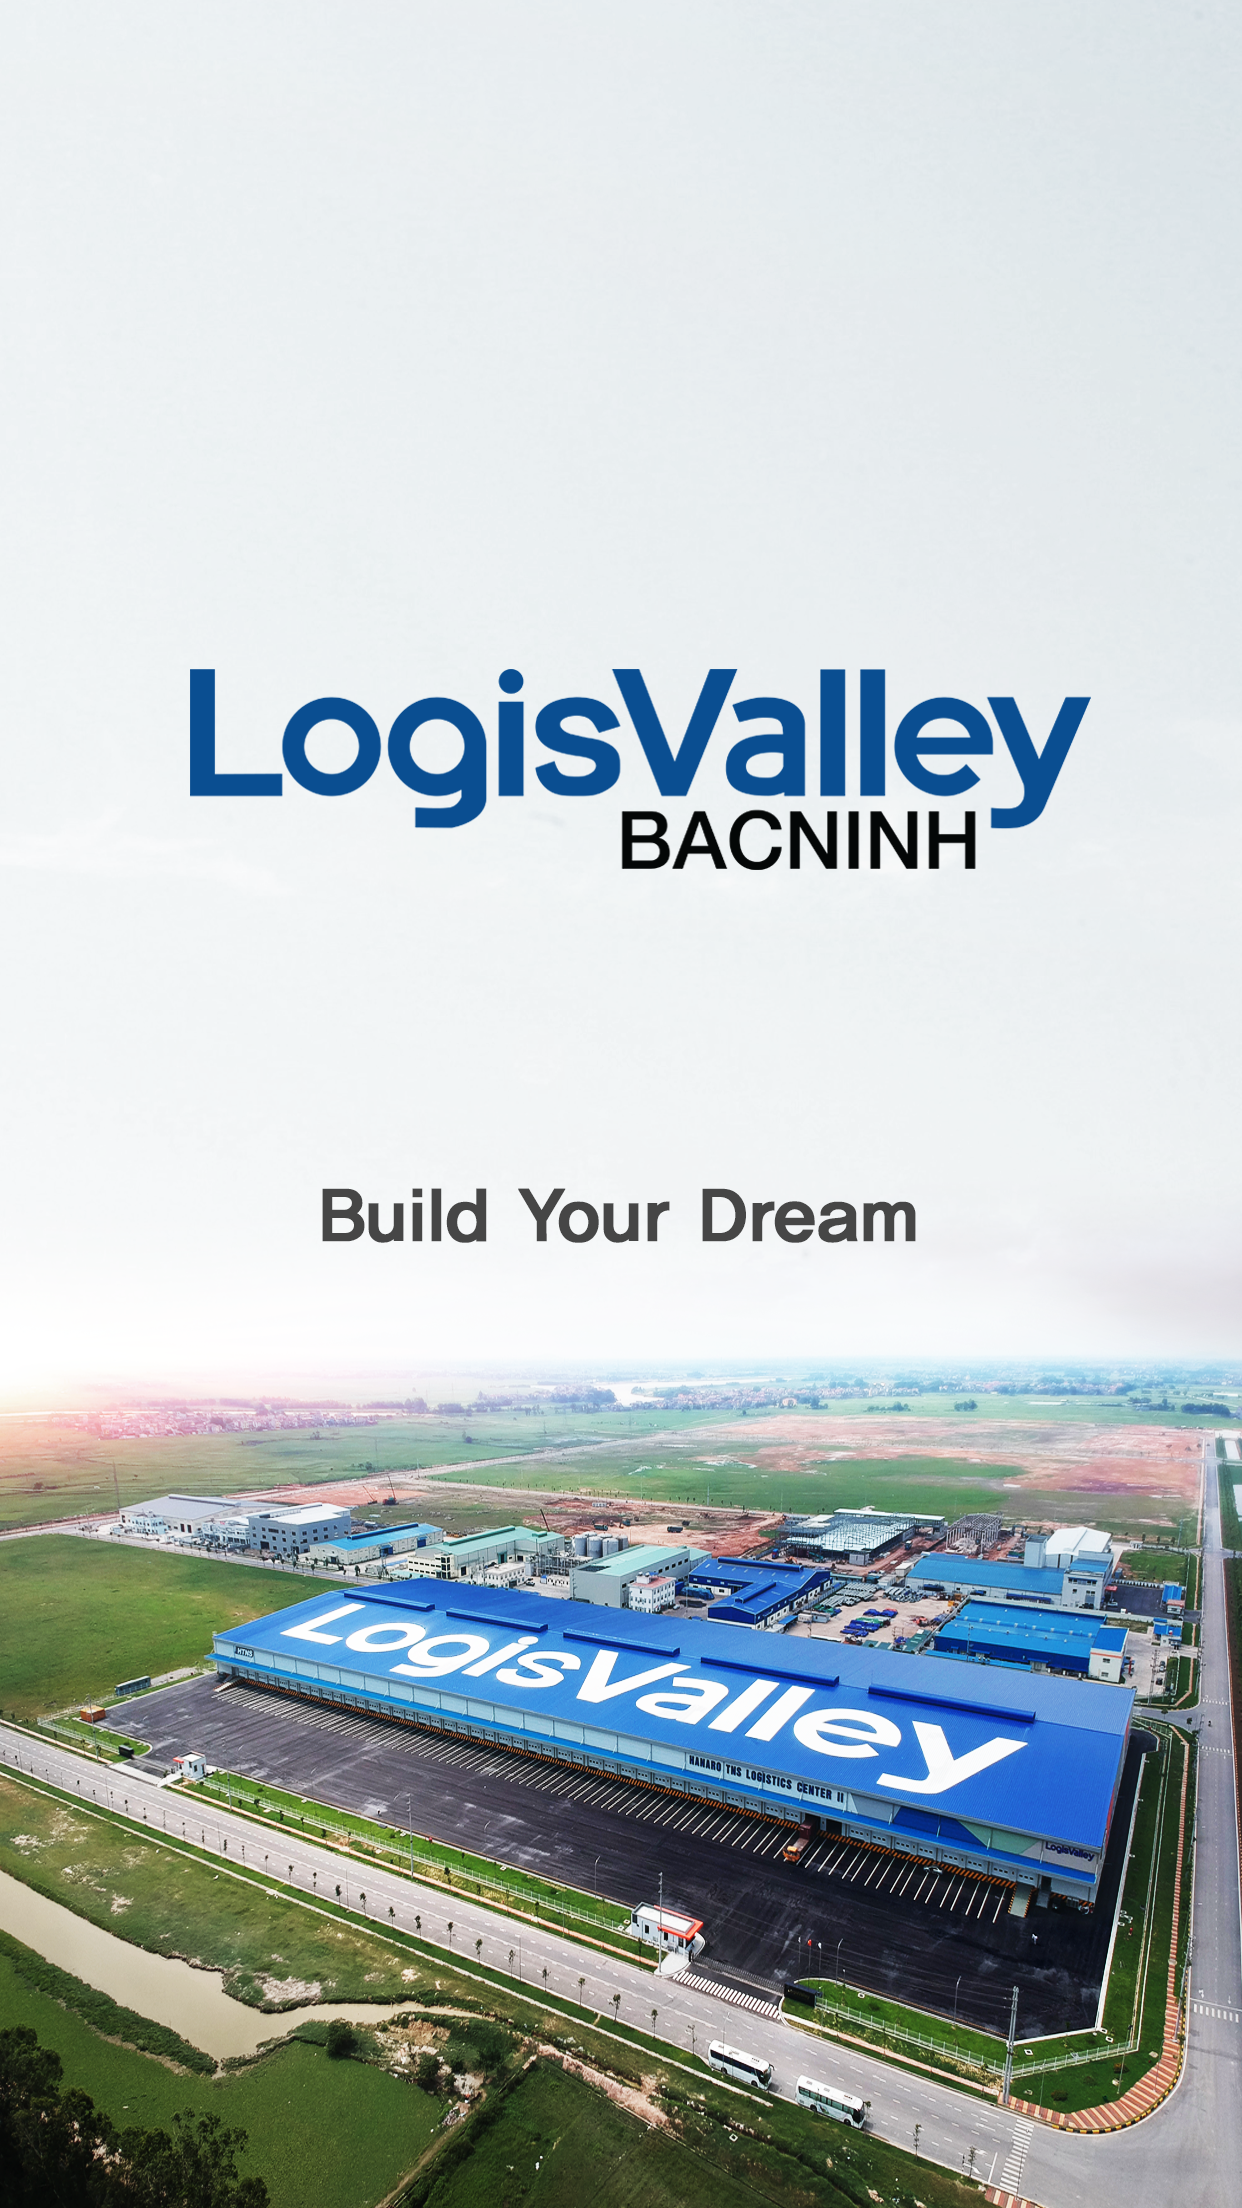 LogisValley BAC NINH